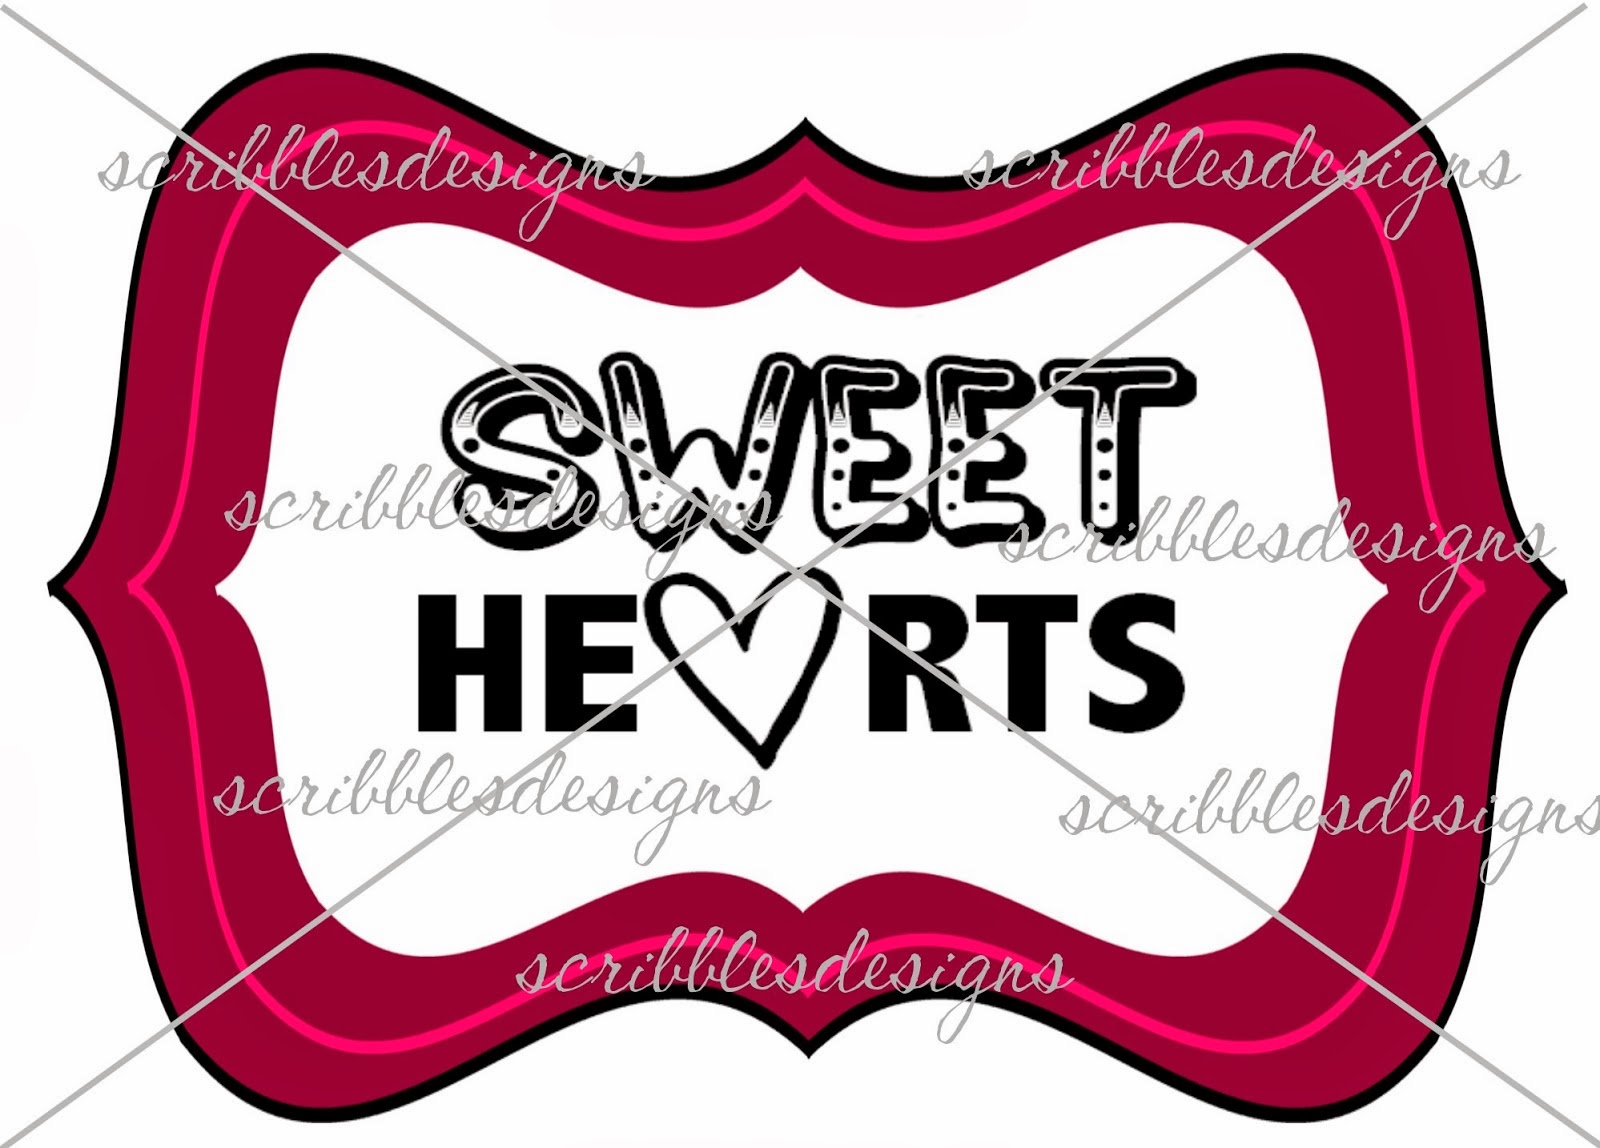 http://buyscribblesdesigns.blogspot.ca/2014/01/077-sweethearts-300.html